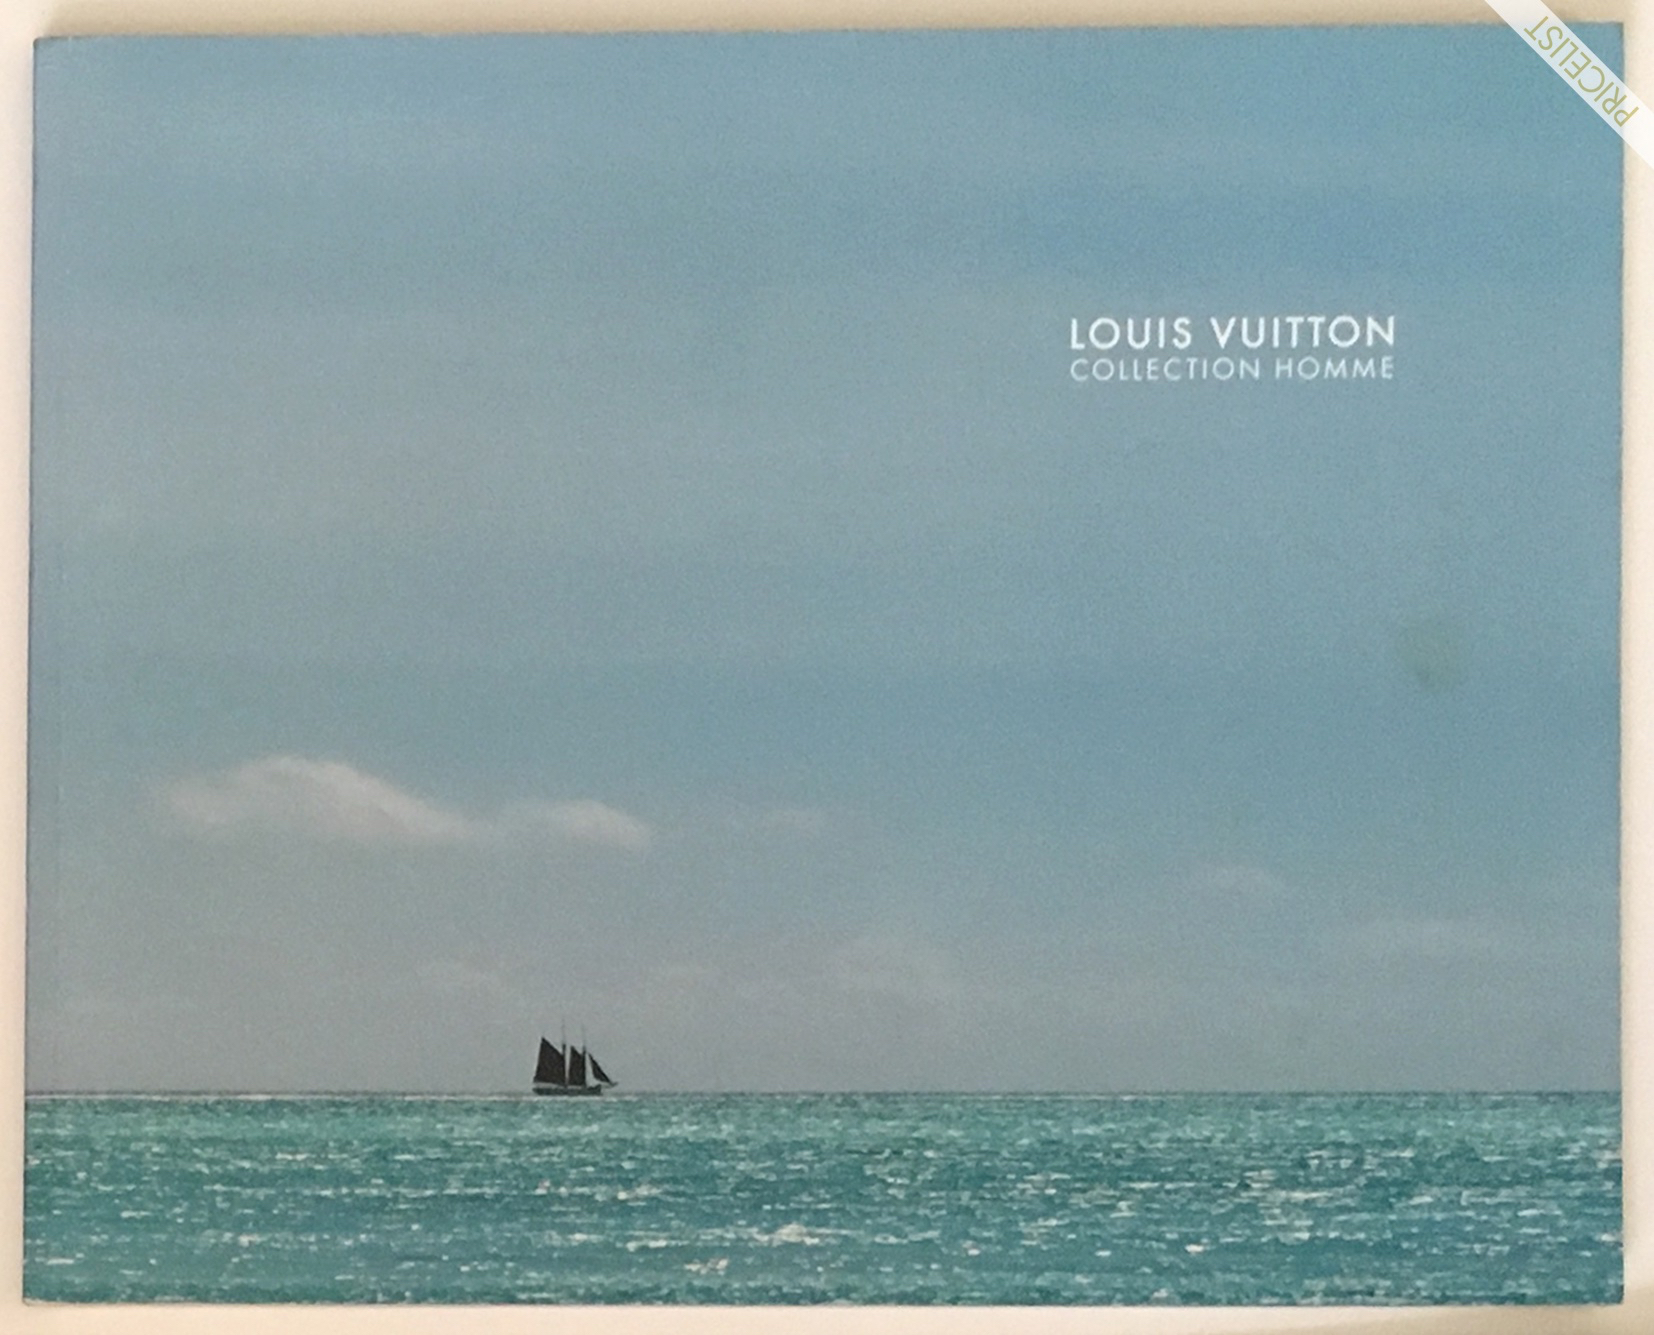 Louis Vuitton Fashion Catalog Spring Summer Men Women RTW Cover Printemps Ete Paris Marc Jacobs 2013